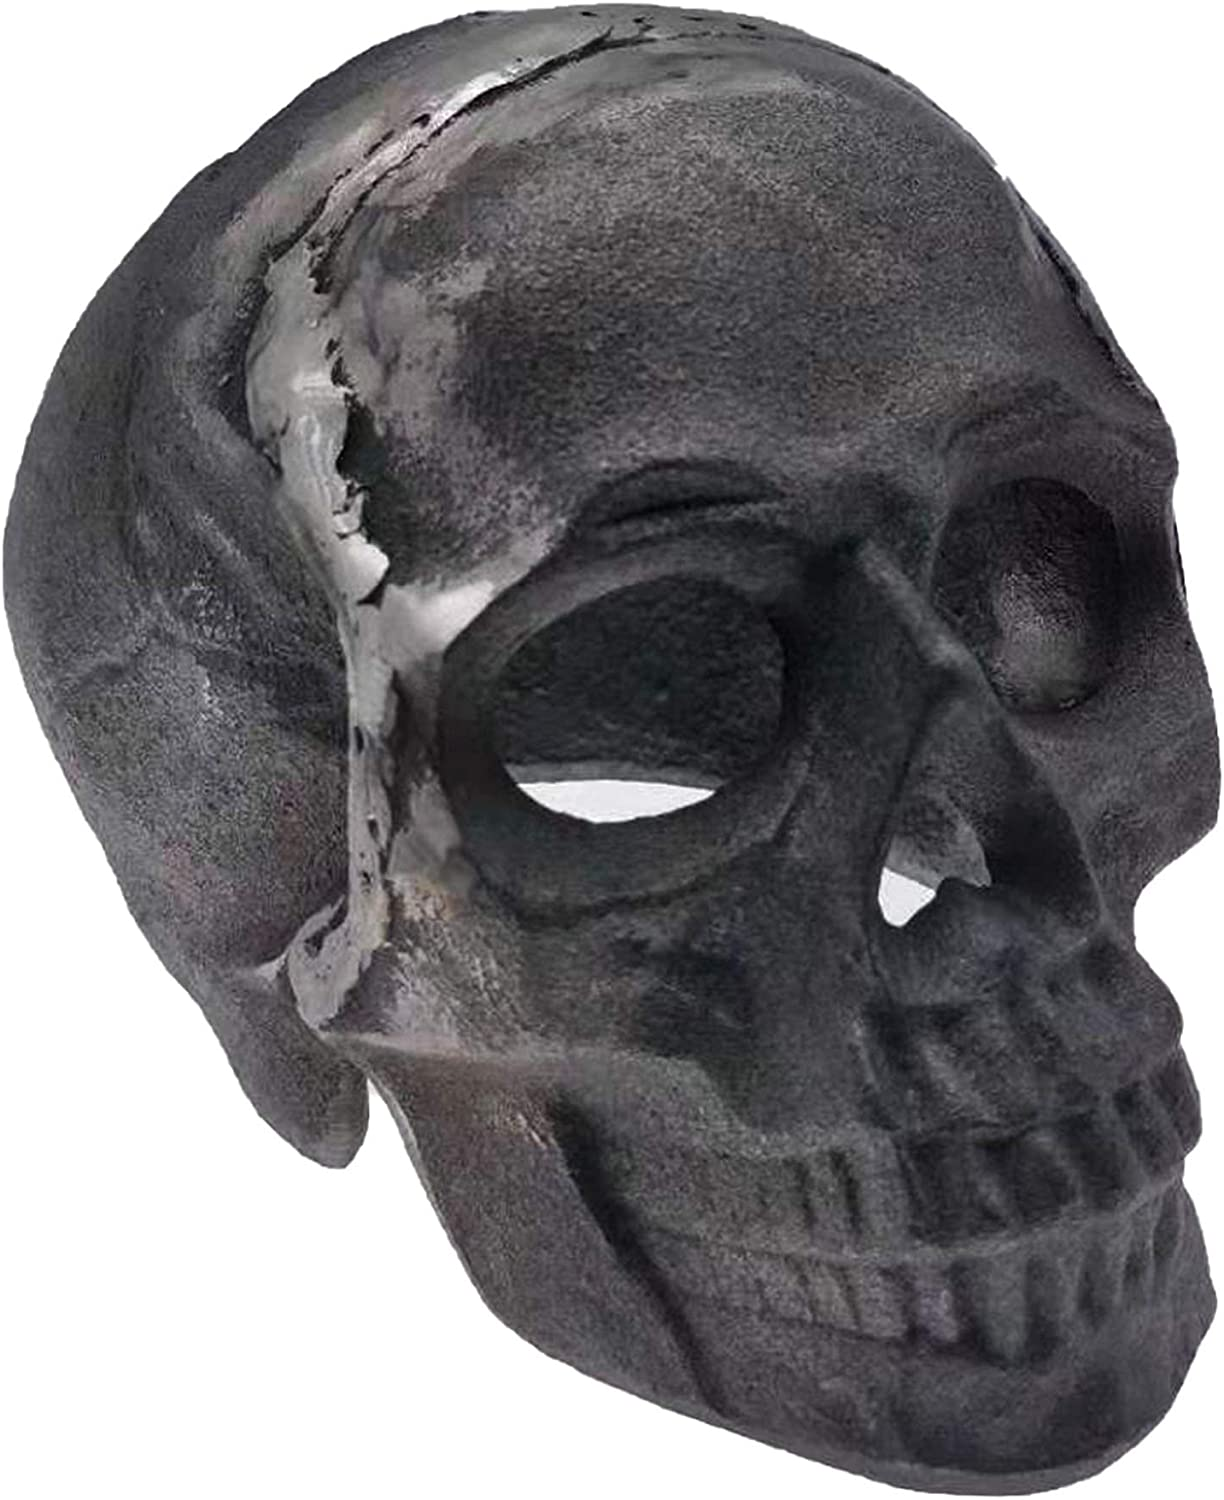 (Fireproof)(Refractory) Imitated Human Skull Gas Log for Indoor or Outdoor Fireplaces, Fire Pits Halloween Decor Skull Charcoal .